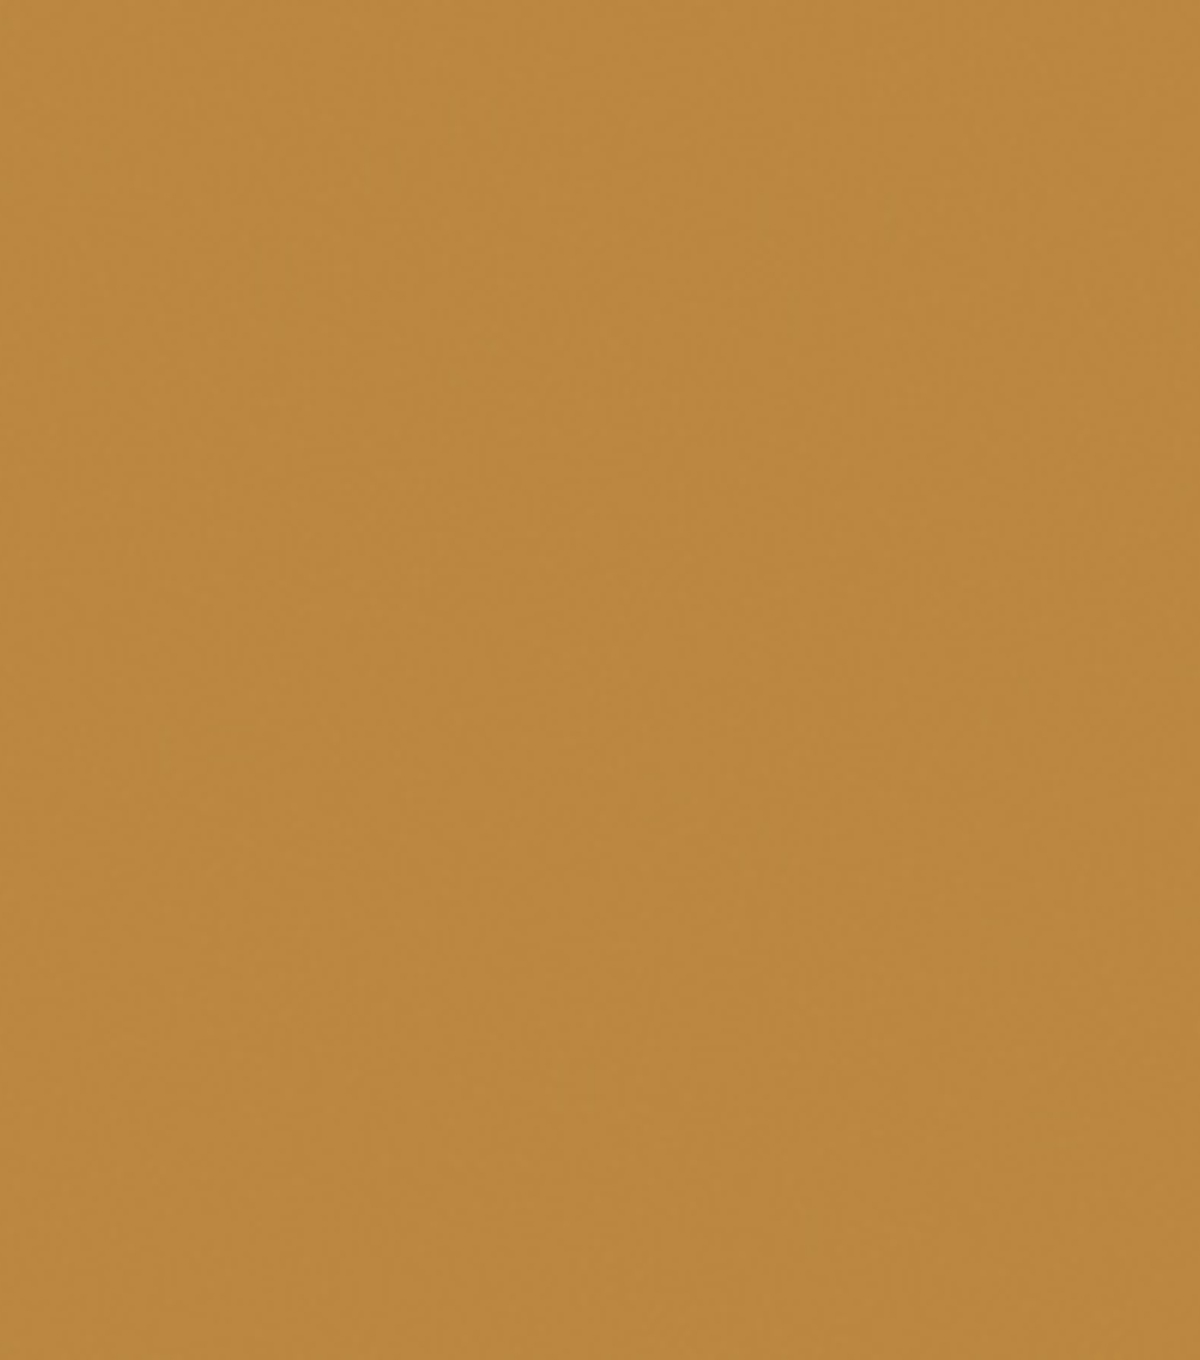 Delta Ceramcoat Acrylic Paint 2 oz, Golden Brown